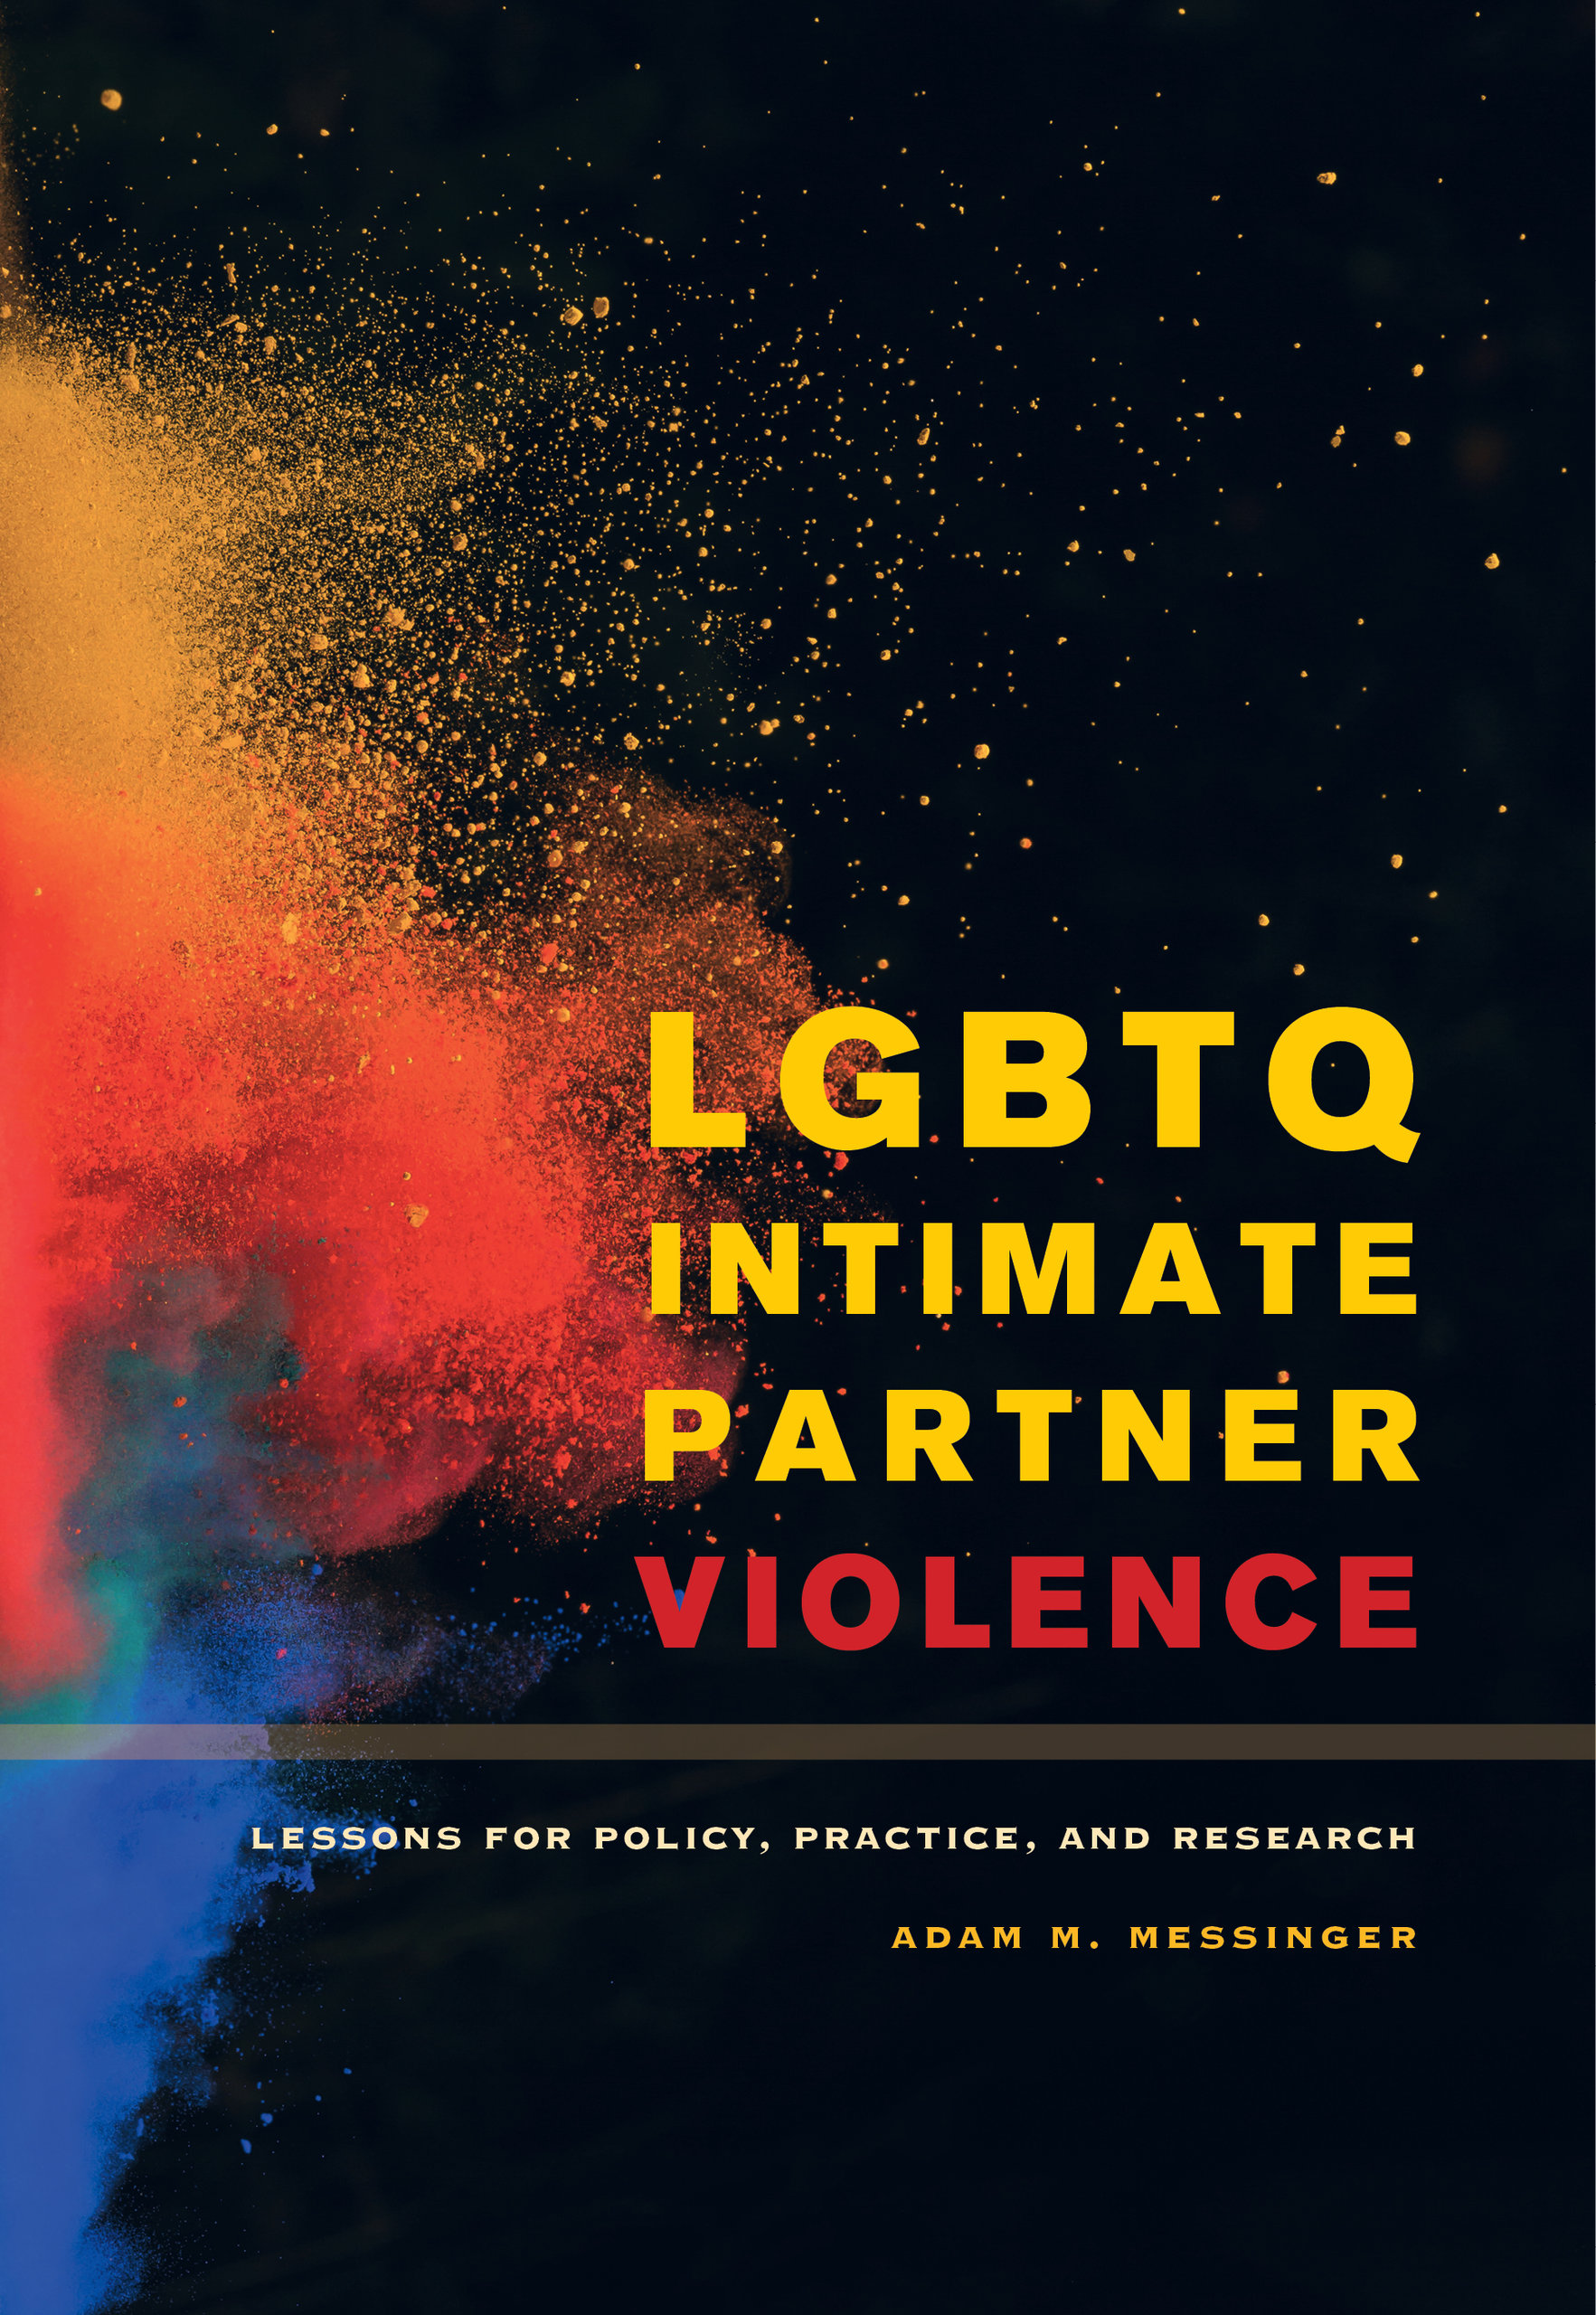 LGBTQ Intimate Partner Violence  Adam M Messinger